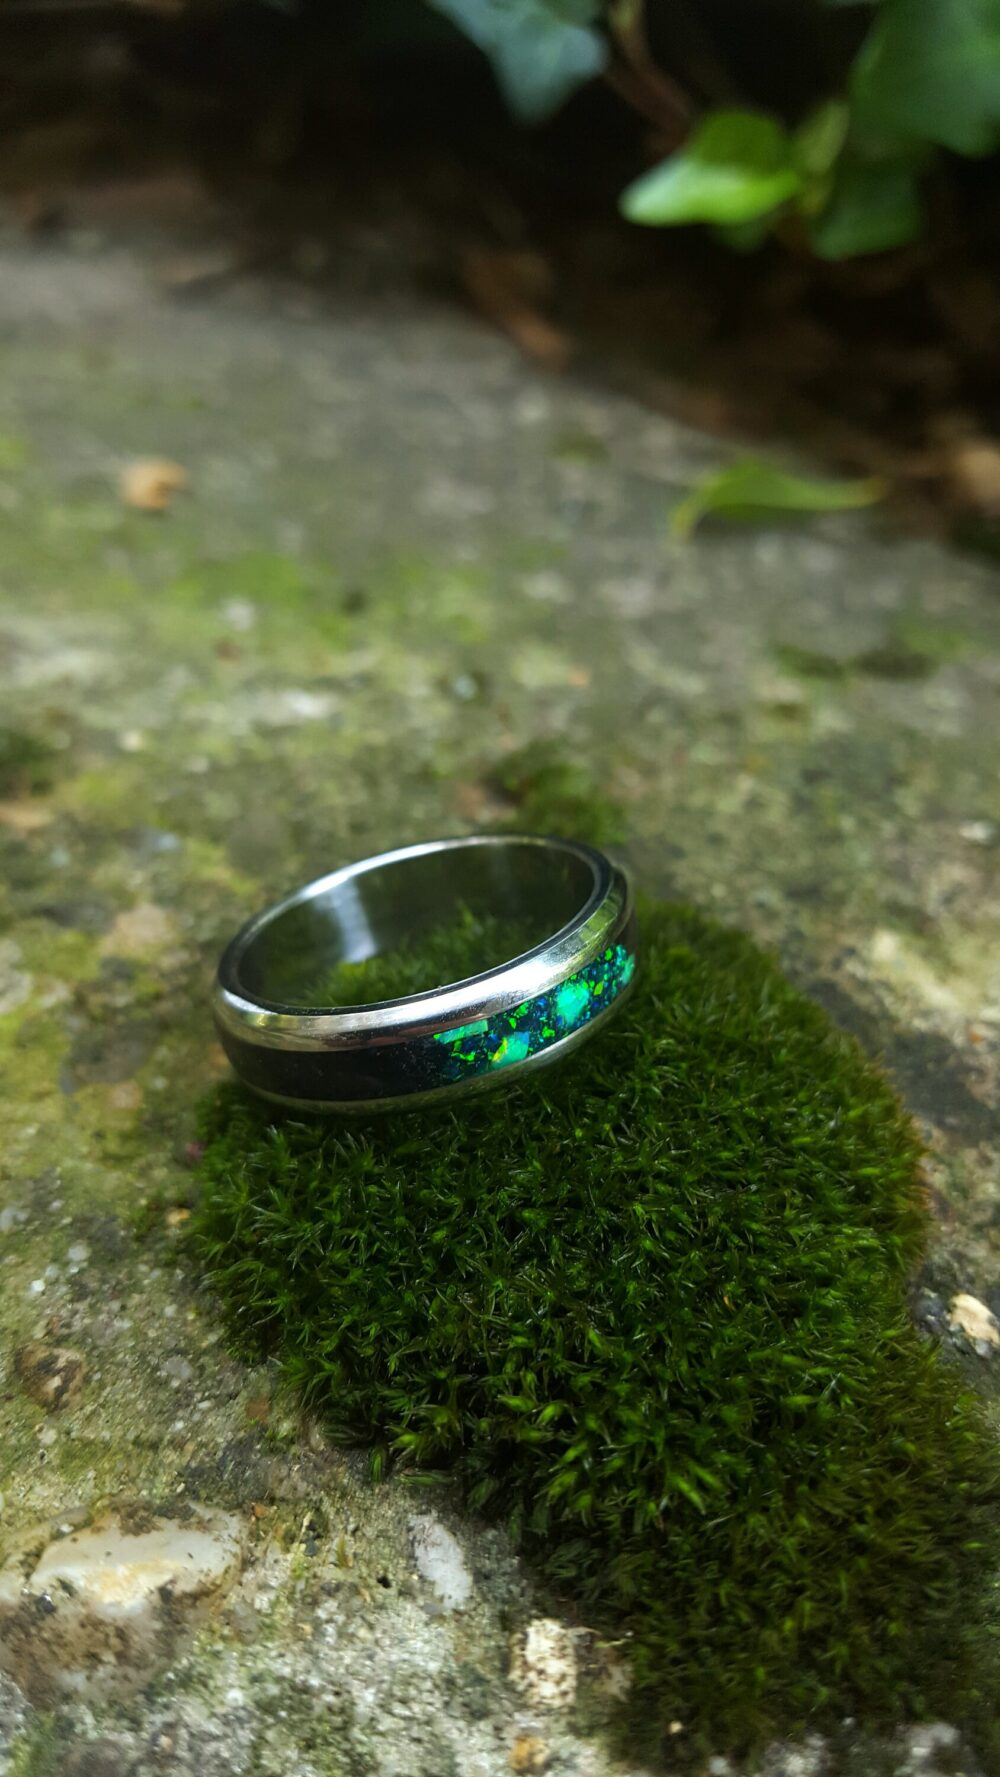 Wedding Ring, Promise Stainless Steel Ring With Crushed Black Tourmaline & Green Opal